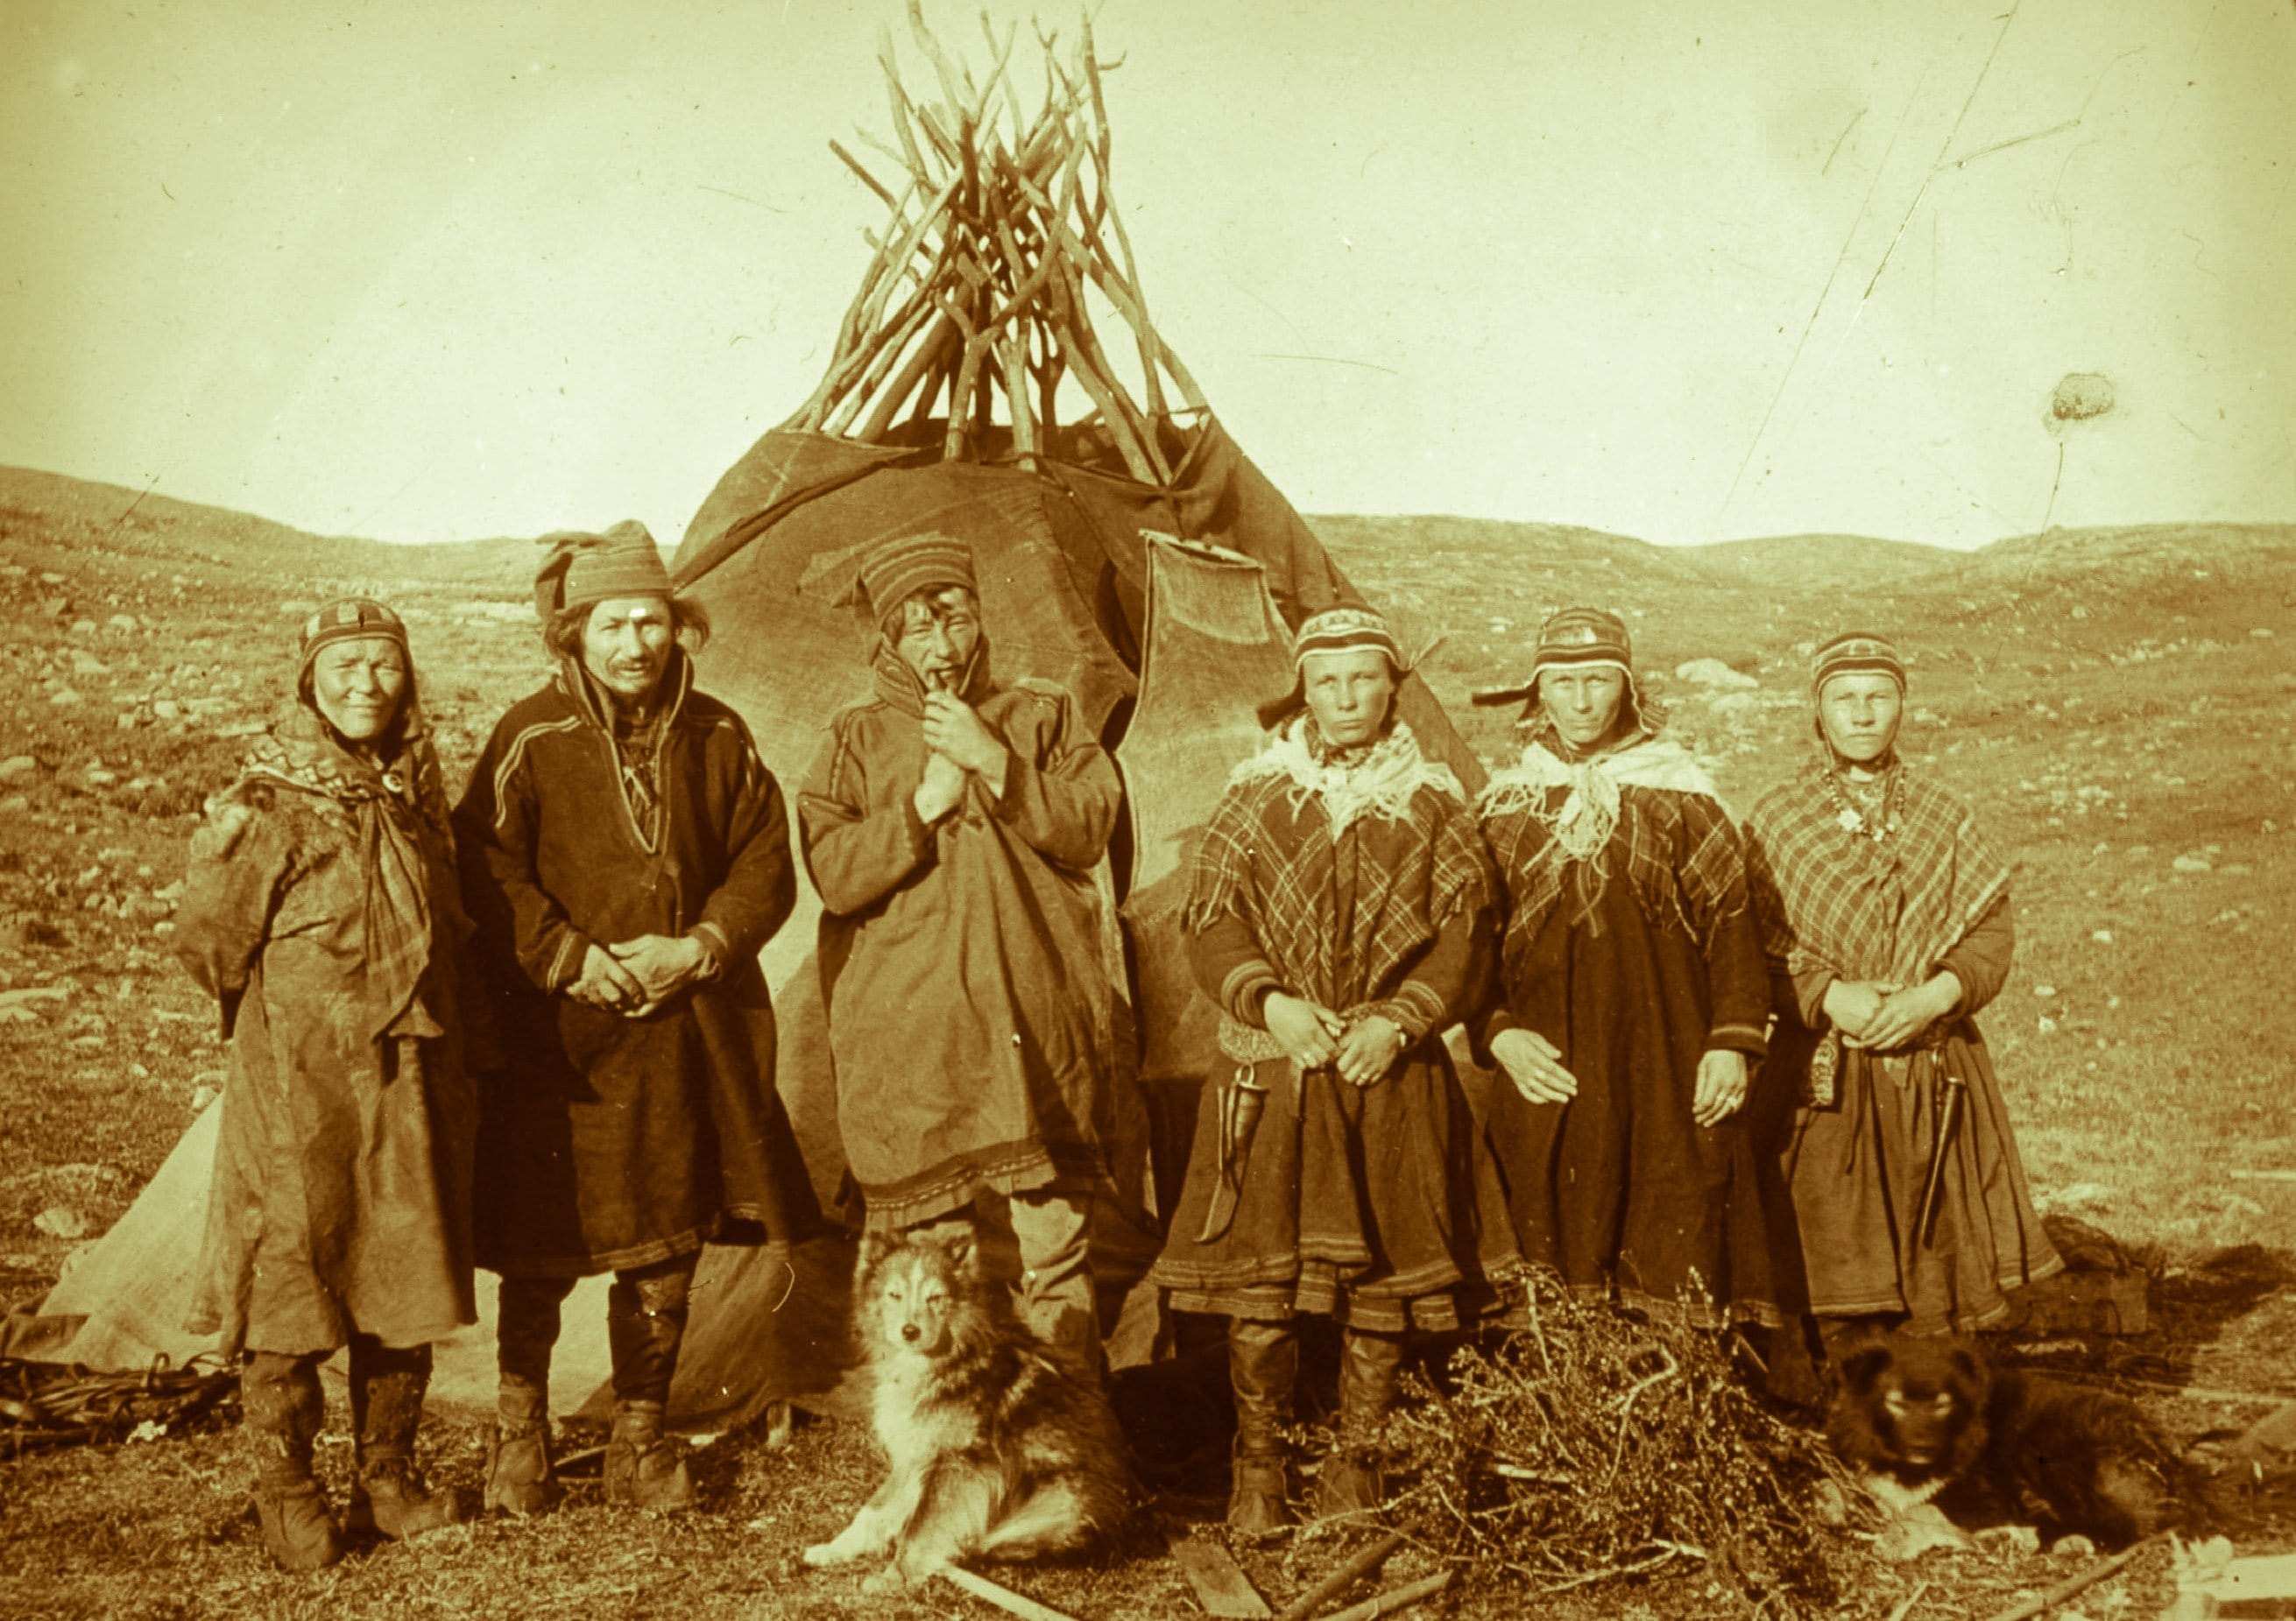 Henrik Sara, his wife, two daughters and a third girl outside their tent. Mikkel Bonga with the pipe. Cedar's mine, Badderen, Kvænangen, Finnmark, Norway. | Photo: Hanna Resvoll-Holmsen - digitaltmuseum.no FBib.01005-070 - Public domain.